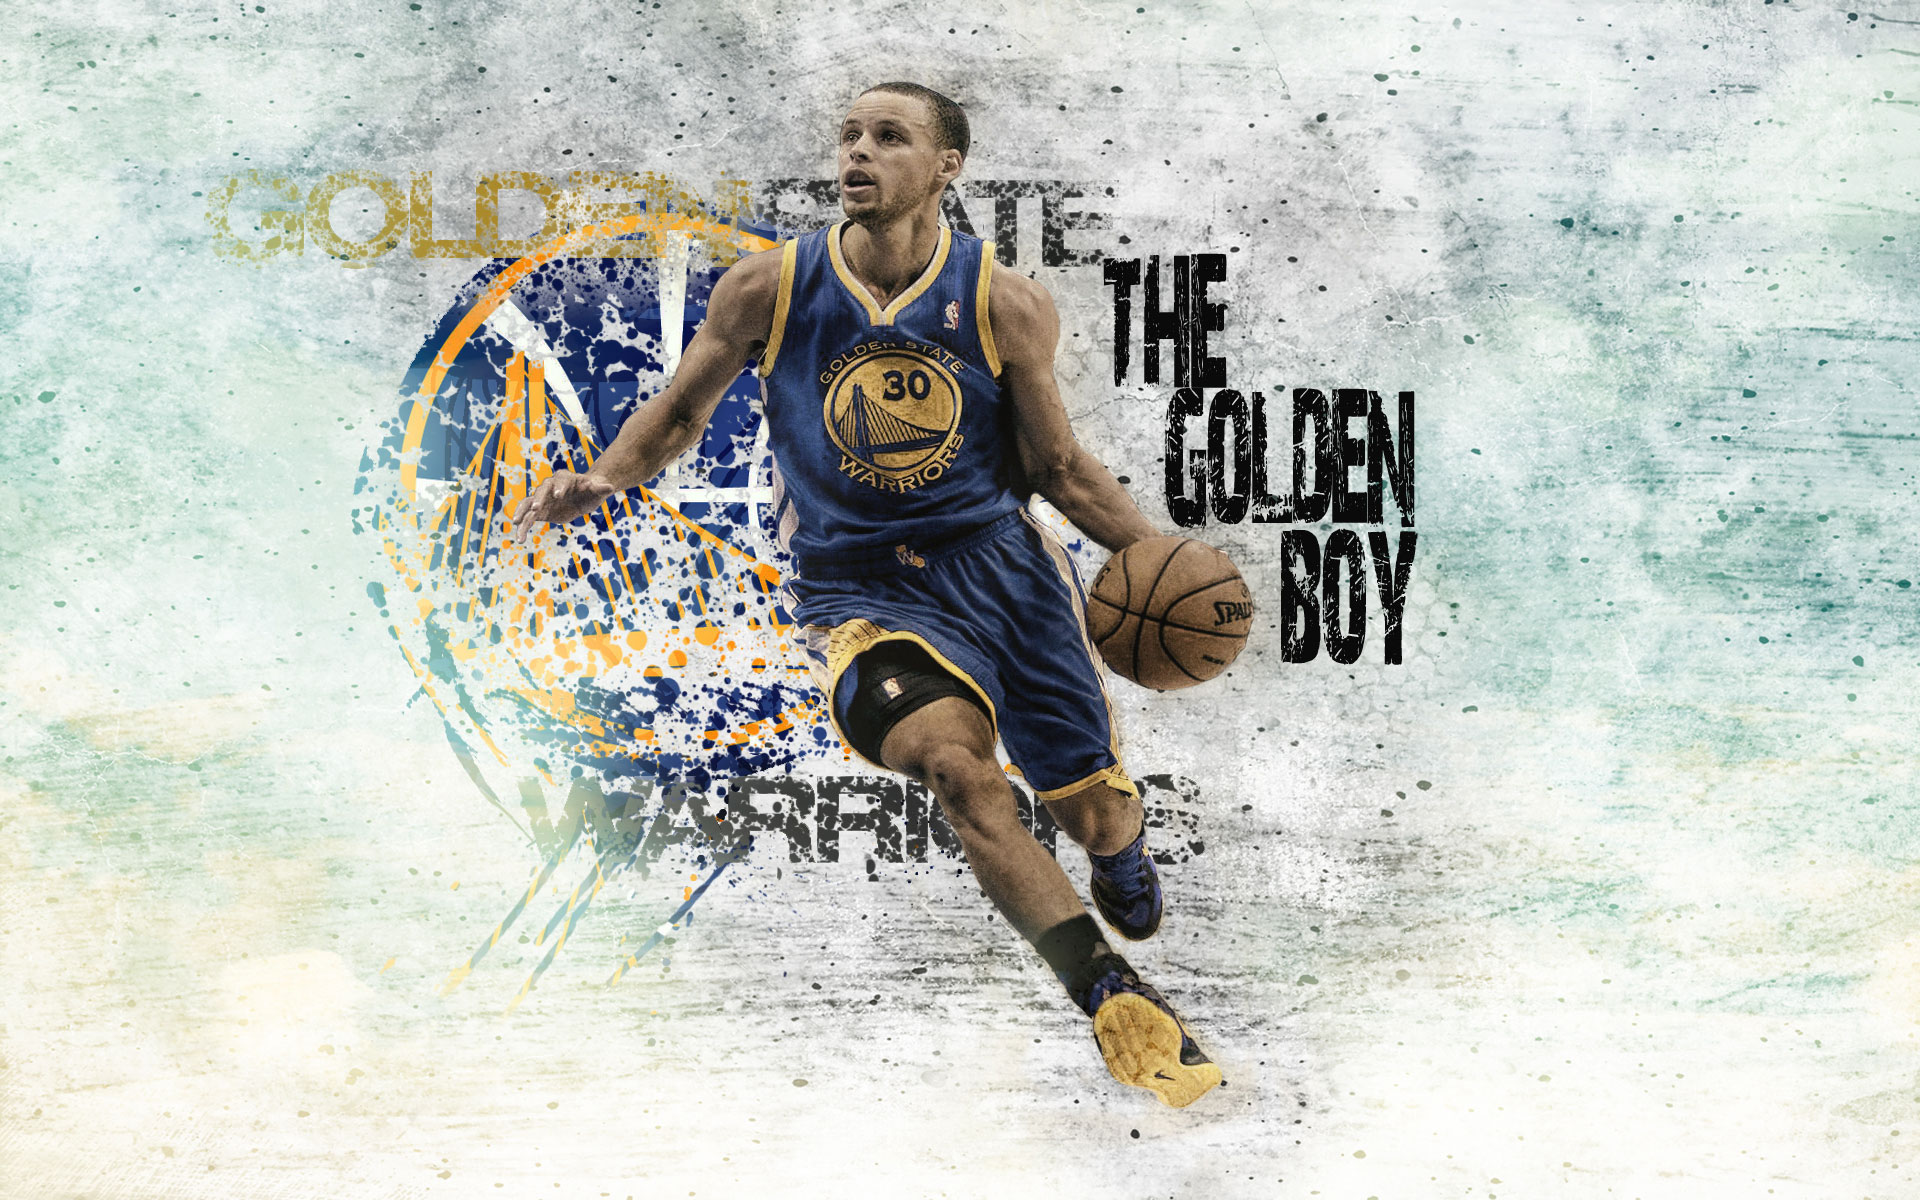 stephen curry wallpaper 2013 wallpapers trendingspace 1920x1200